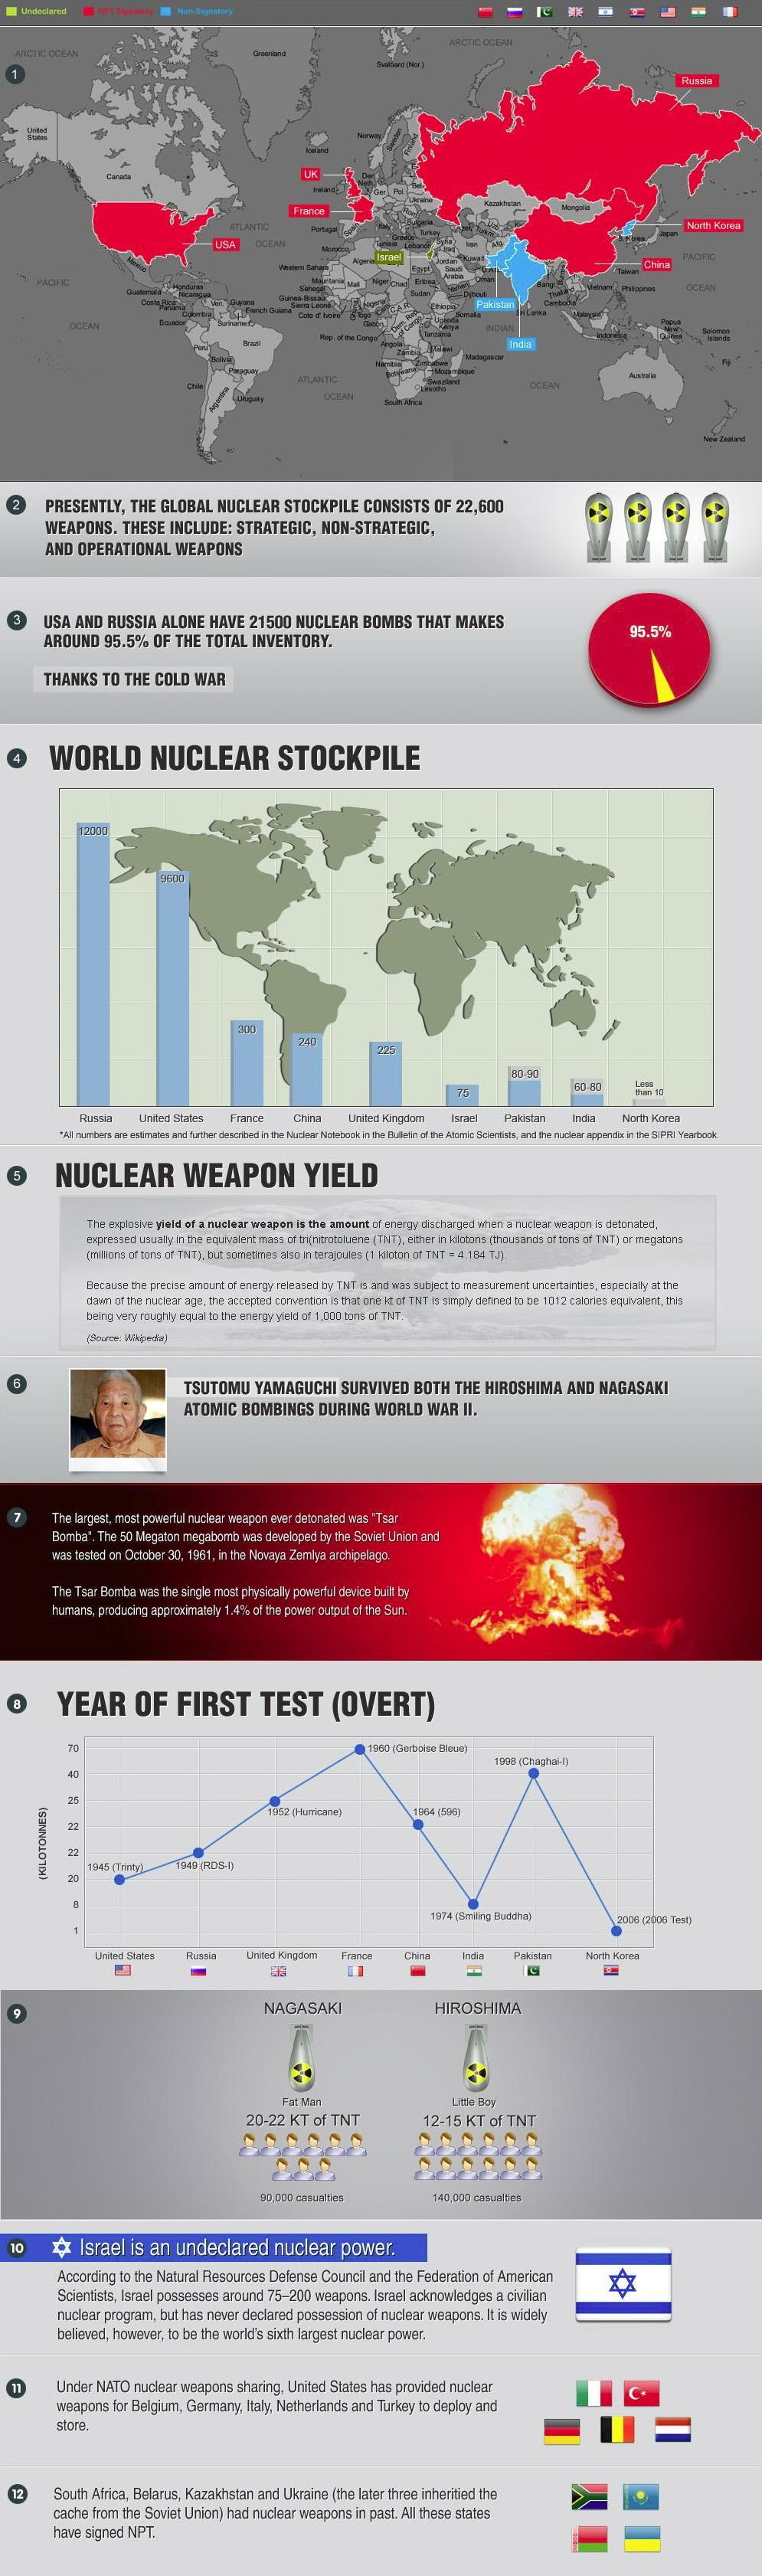 the history of nuclear weapons This timeline has been prepared by nuclear information service to mark the sixtieth anniversary of the first atomic test by the united kingdom on 3 october 1952 it outlines key events in the development of the uk's nuclear weapons programme from the decision to begin research into atomic weapons during world war ii to the current.